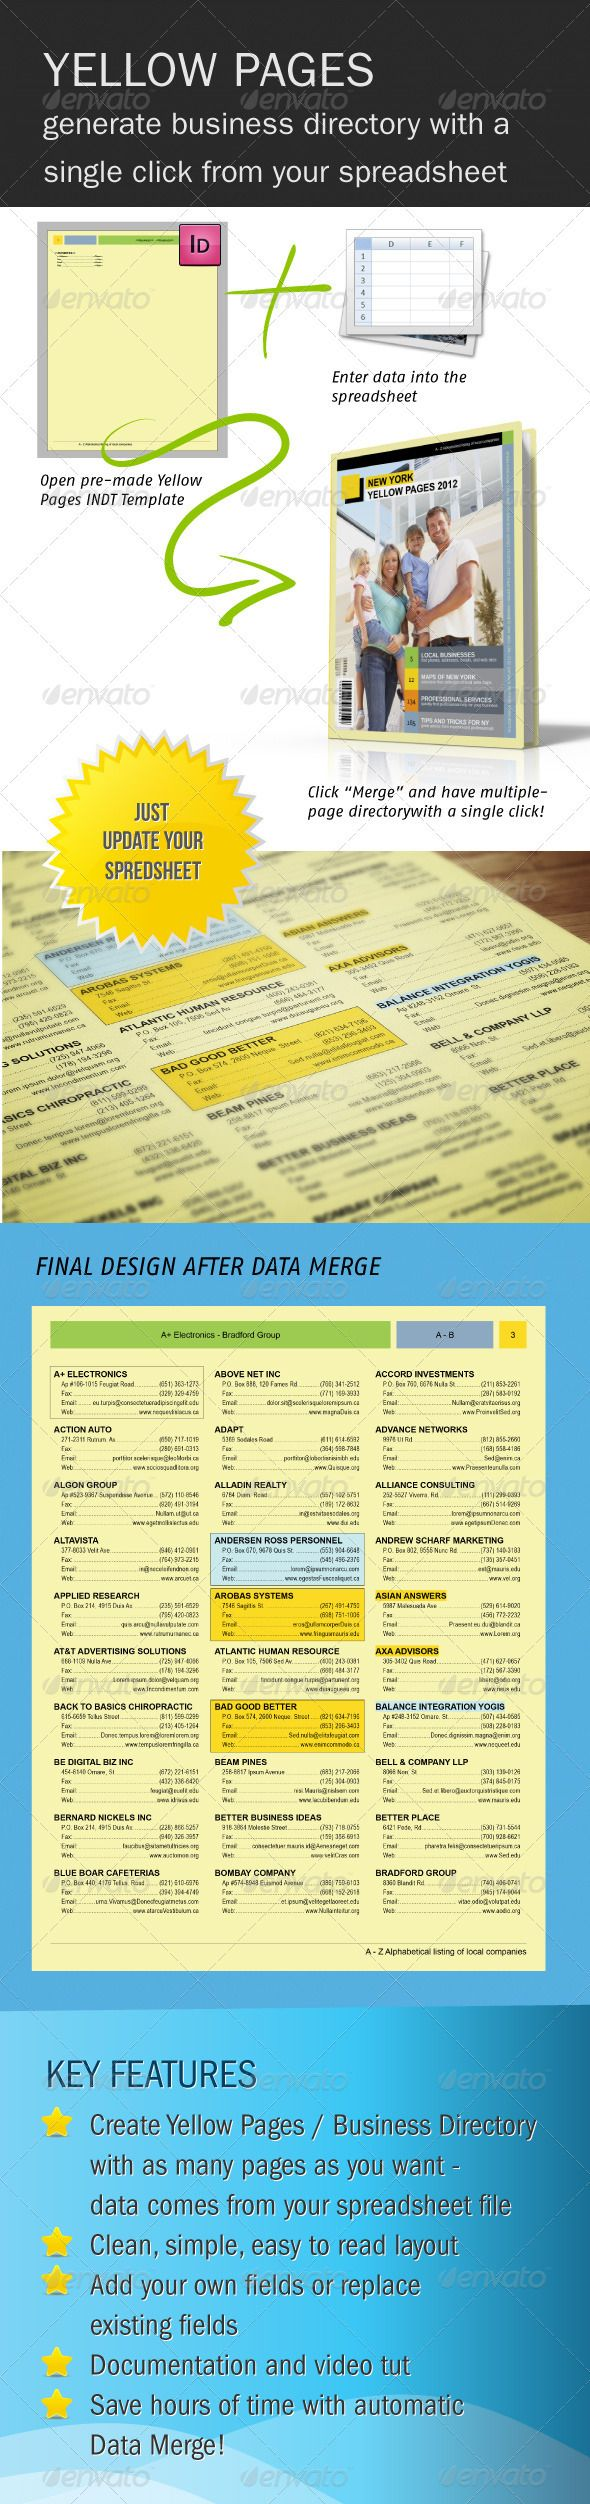 Yellow Pages Business Directory #GraphicRiver Yellow Pages template – create unlimited number of pages with this easy-to-use data merge. All data is in the spreadsheet, and that is all you have to edit. Once the data is ready you can create hundreds of pages with just a few clicks by using automation feature of InDesign. Data fields currently include business name, address, fax, email, url. These fields can be edited, or you can add your own fields and create a completely new design that…